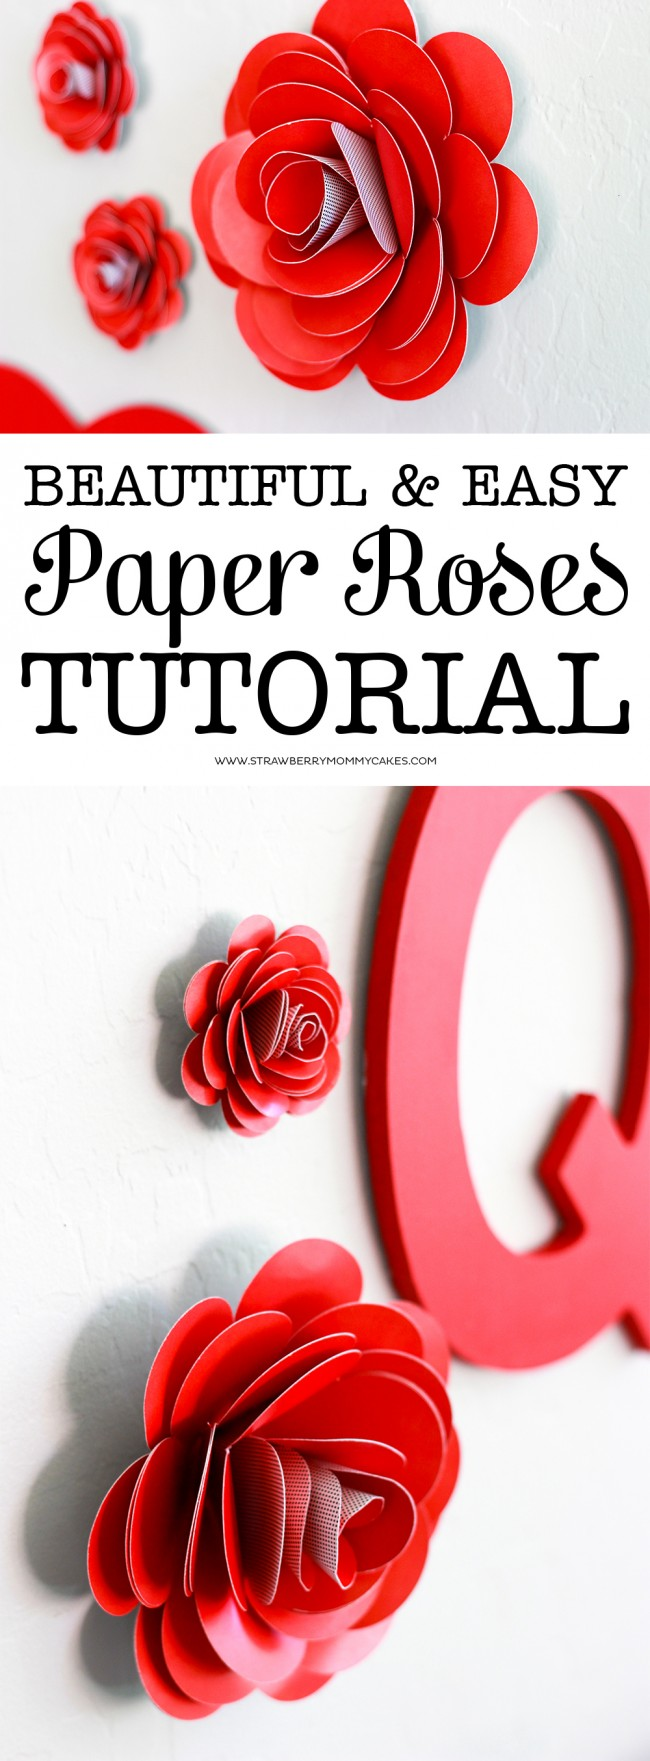 How to Make Easy Paper Roses! These paper roses would be perfect for your party decor for any occasion, like Valentine's Day or Easter!